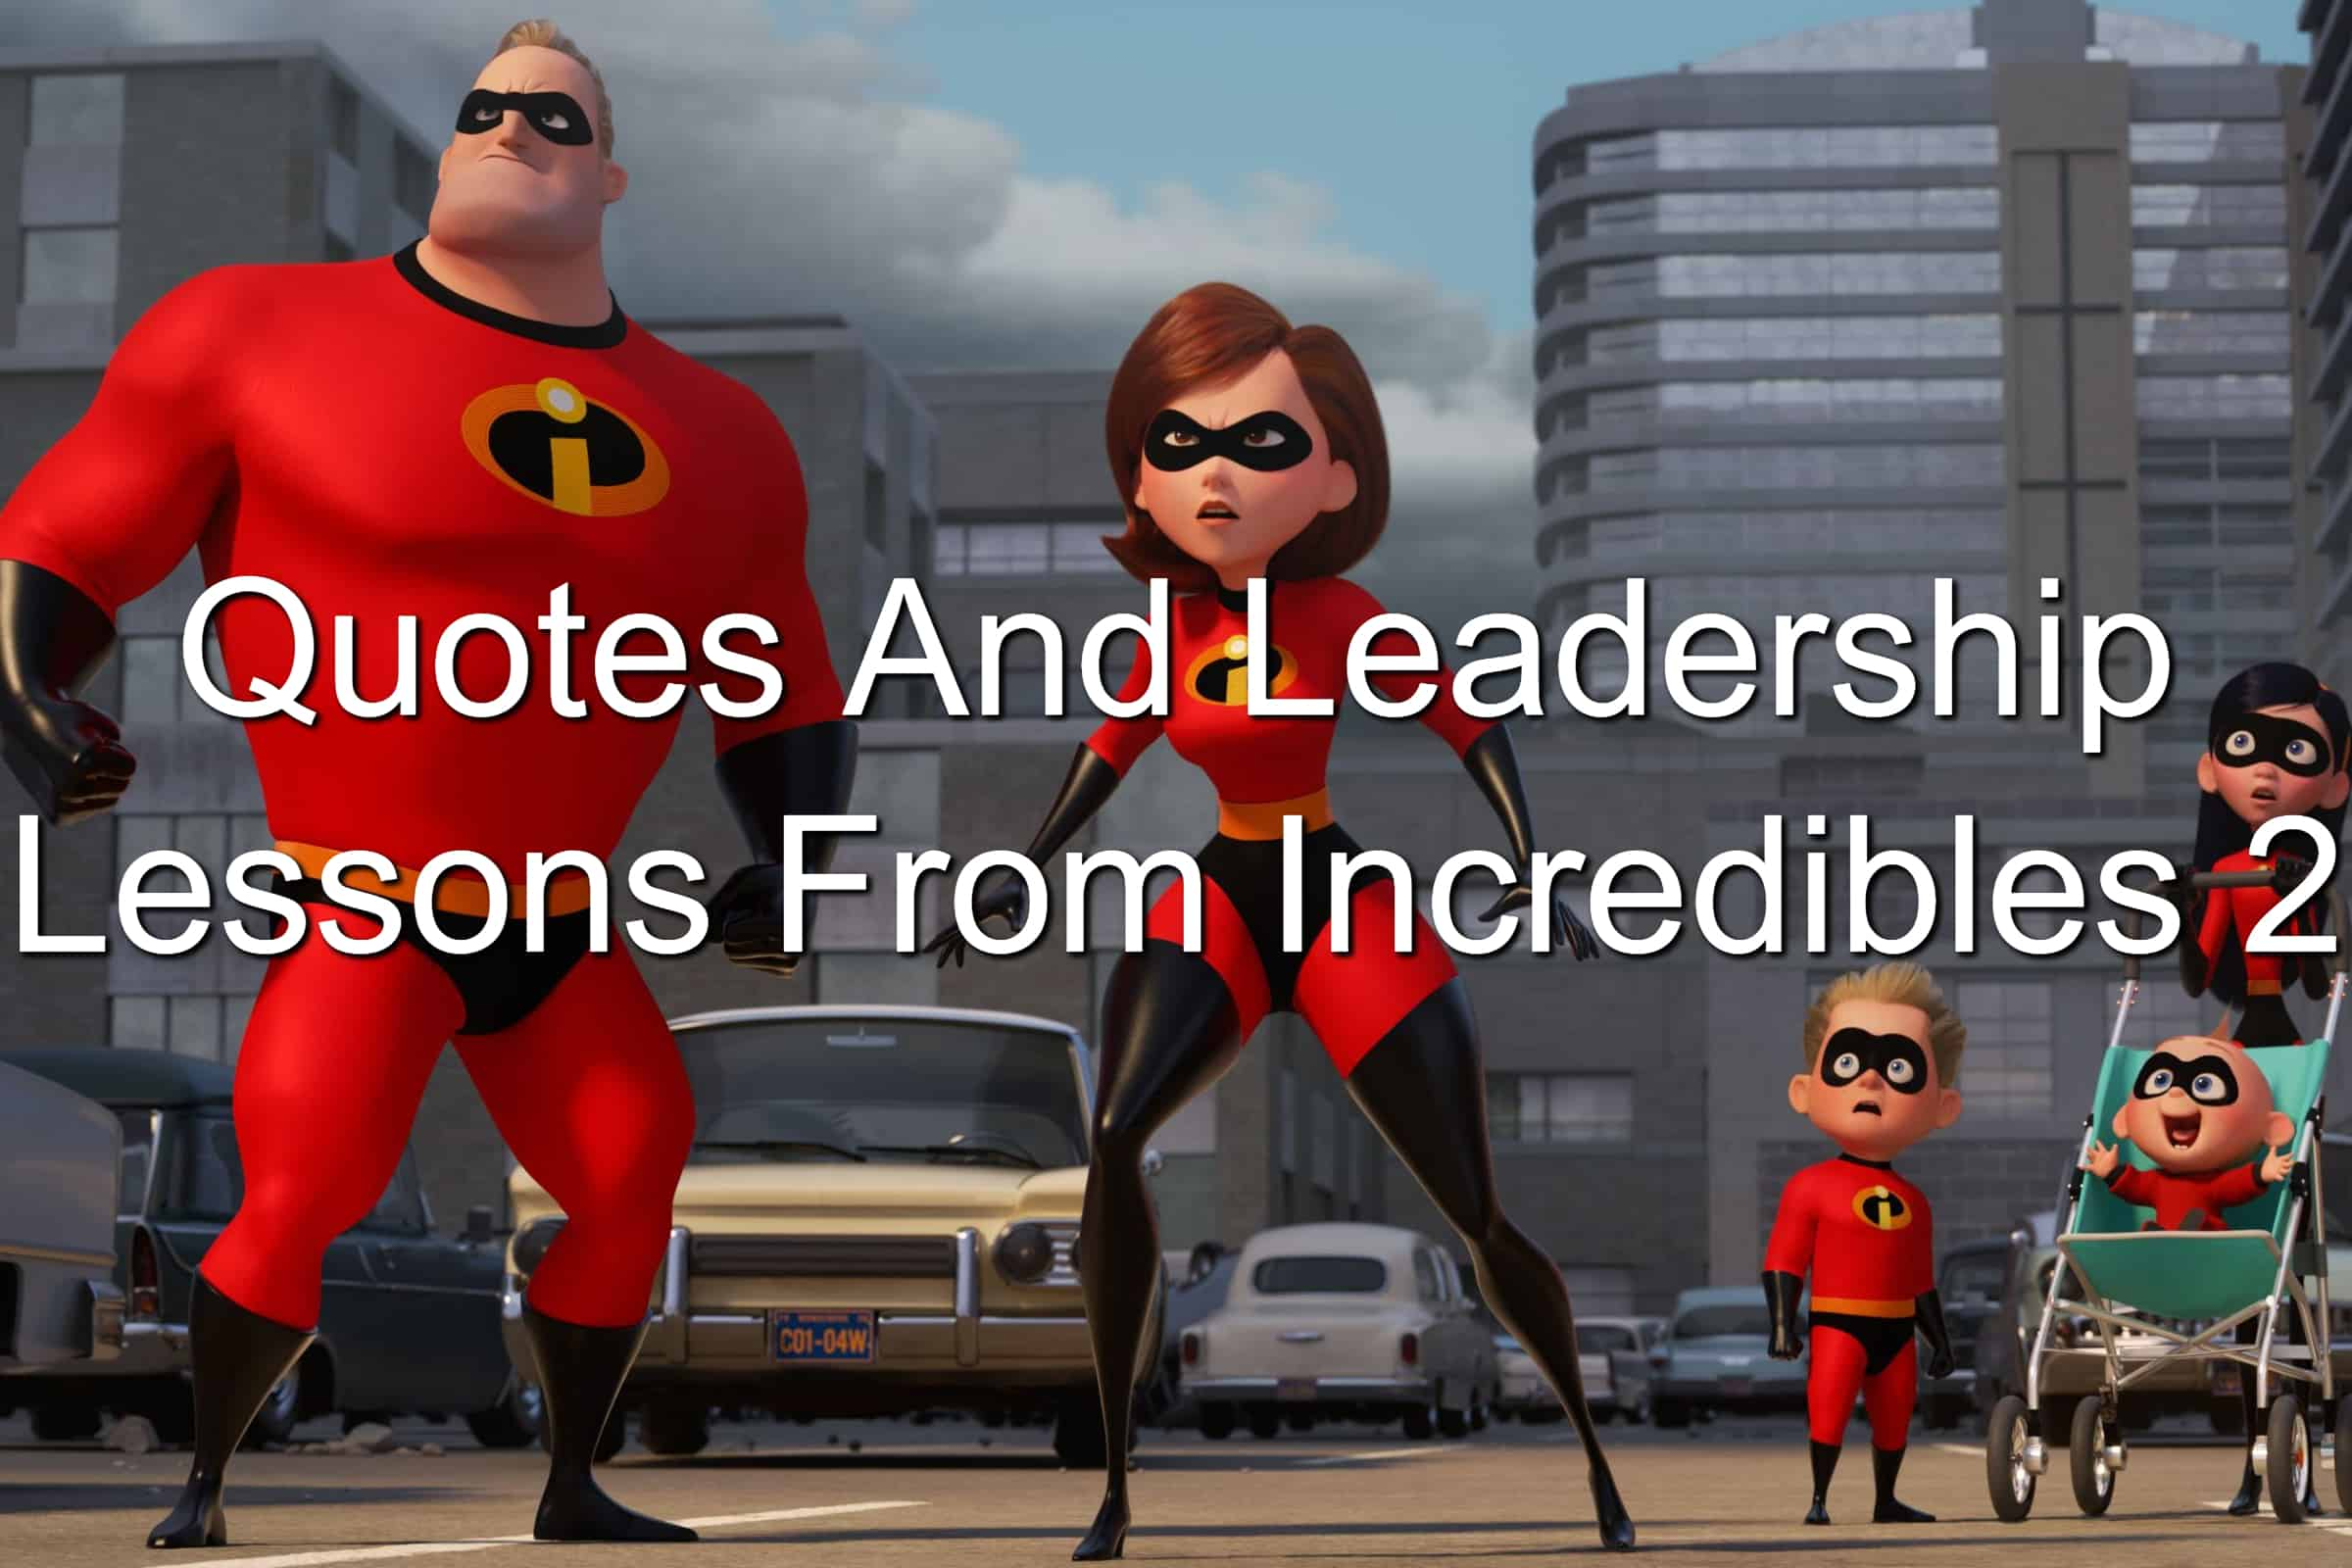 Quotes And Leadership Lessons From Incredibles 2 Joseph Lalonde